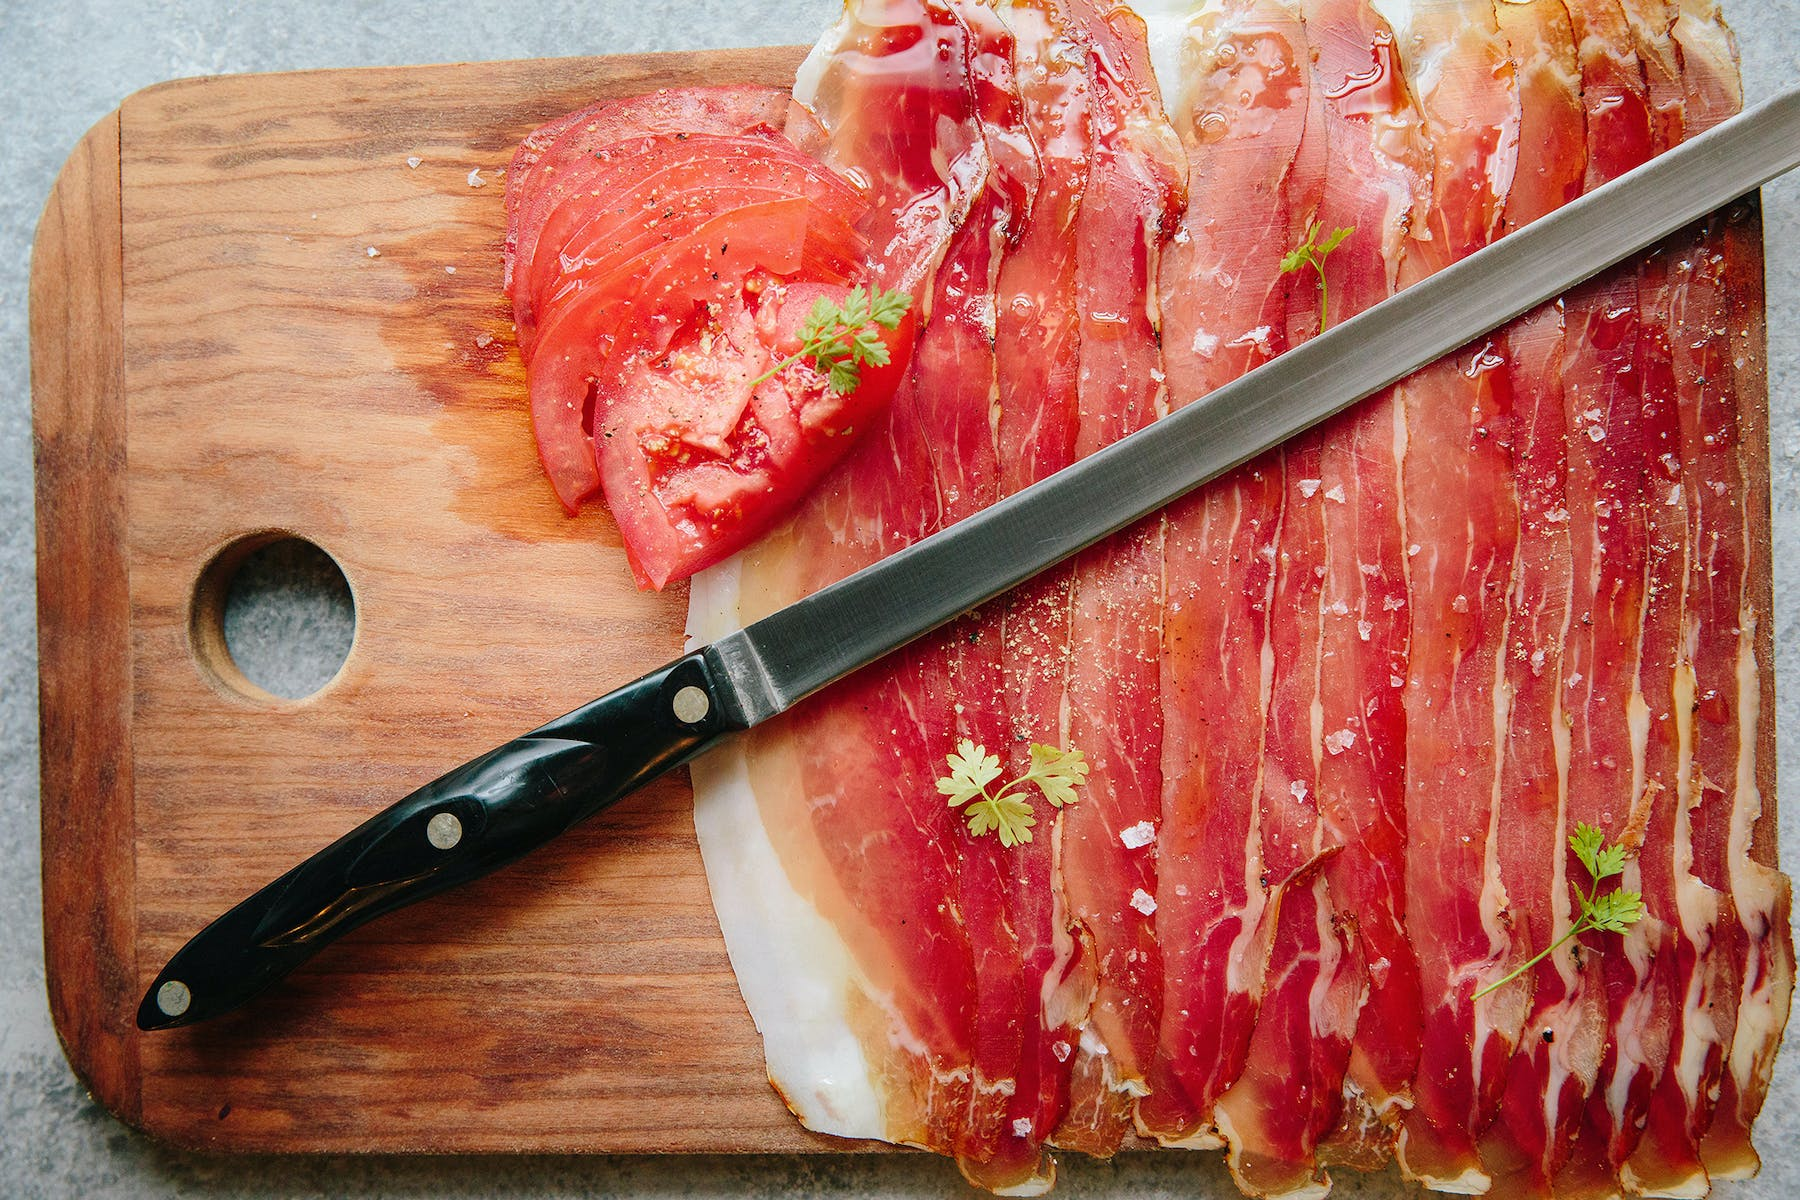 a cutting board with ham and a knife on top